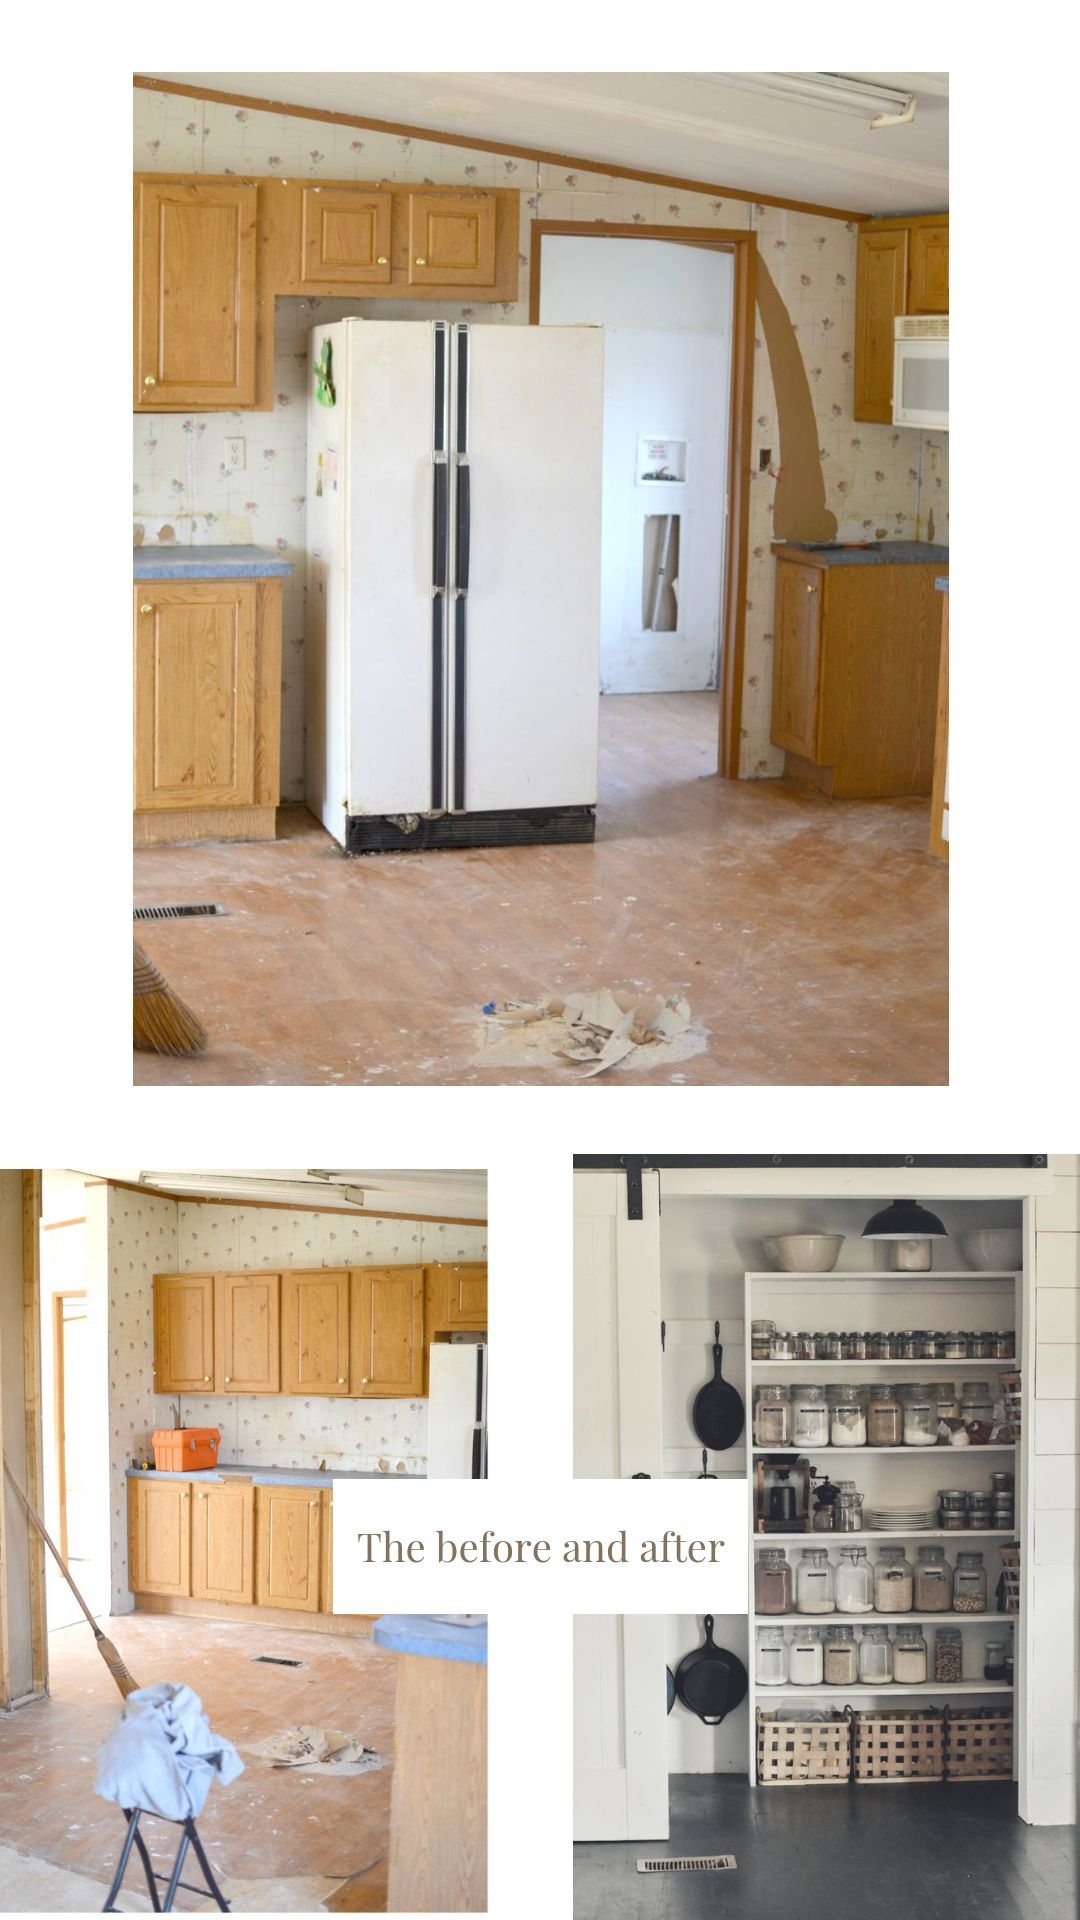 Painting Aging Kitchen Cabinets Create Manufactured Home Kitchen Cabinet Doors Home Decorating Ideas Can You Paint Mobile Home Kitchen Cabinets Kitchen Kitchen Remodel Home Kitchens Remodeling Mobile Homes